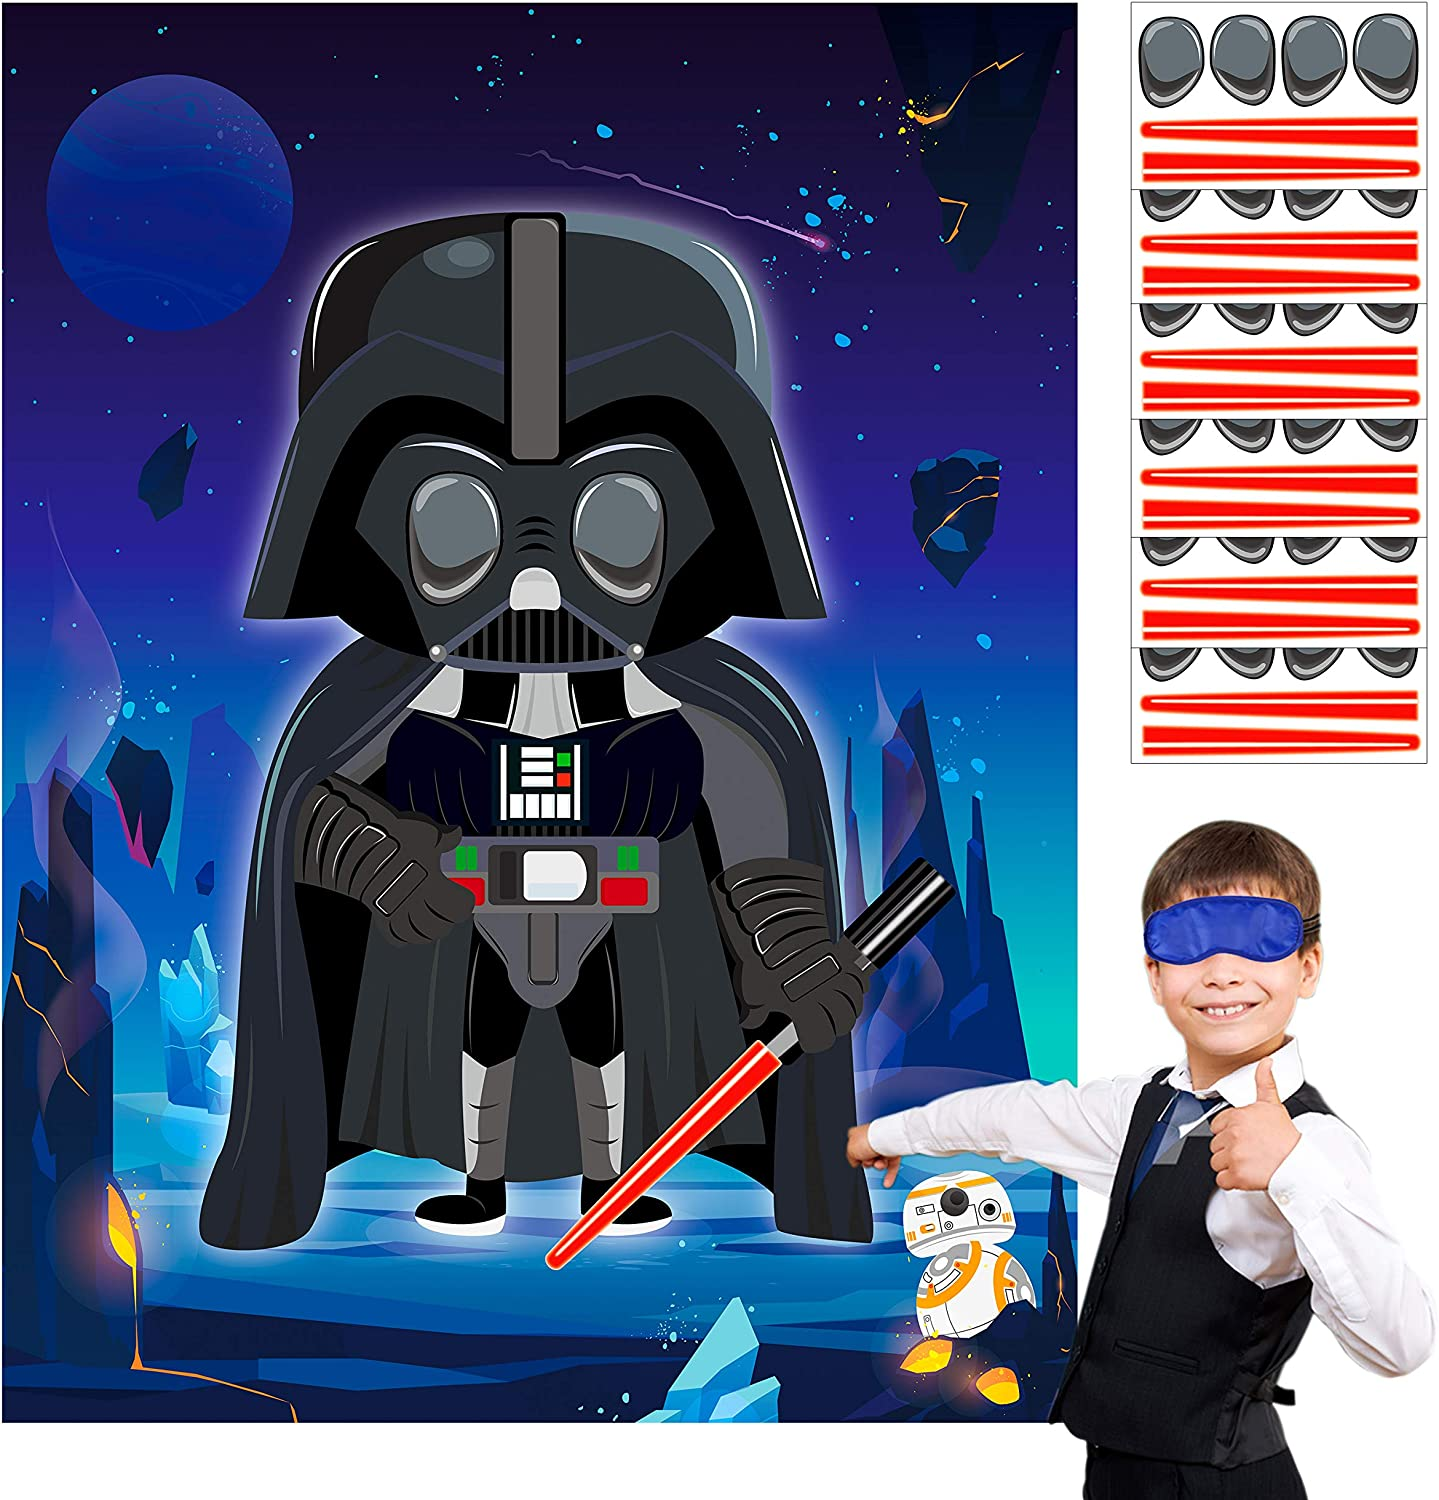 MALLMALL6 Galaxy Wars Stickers Party Games for Kids Pin The Eyes and Light Saber On The Darth Outer Space Wars Birthday Party Favors Universe Planets Party Supplies Decorations Pin Game with Blindfold